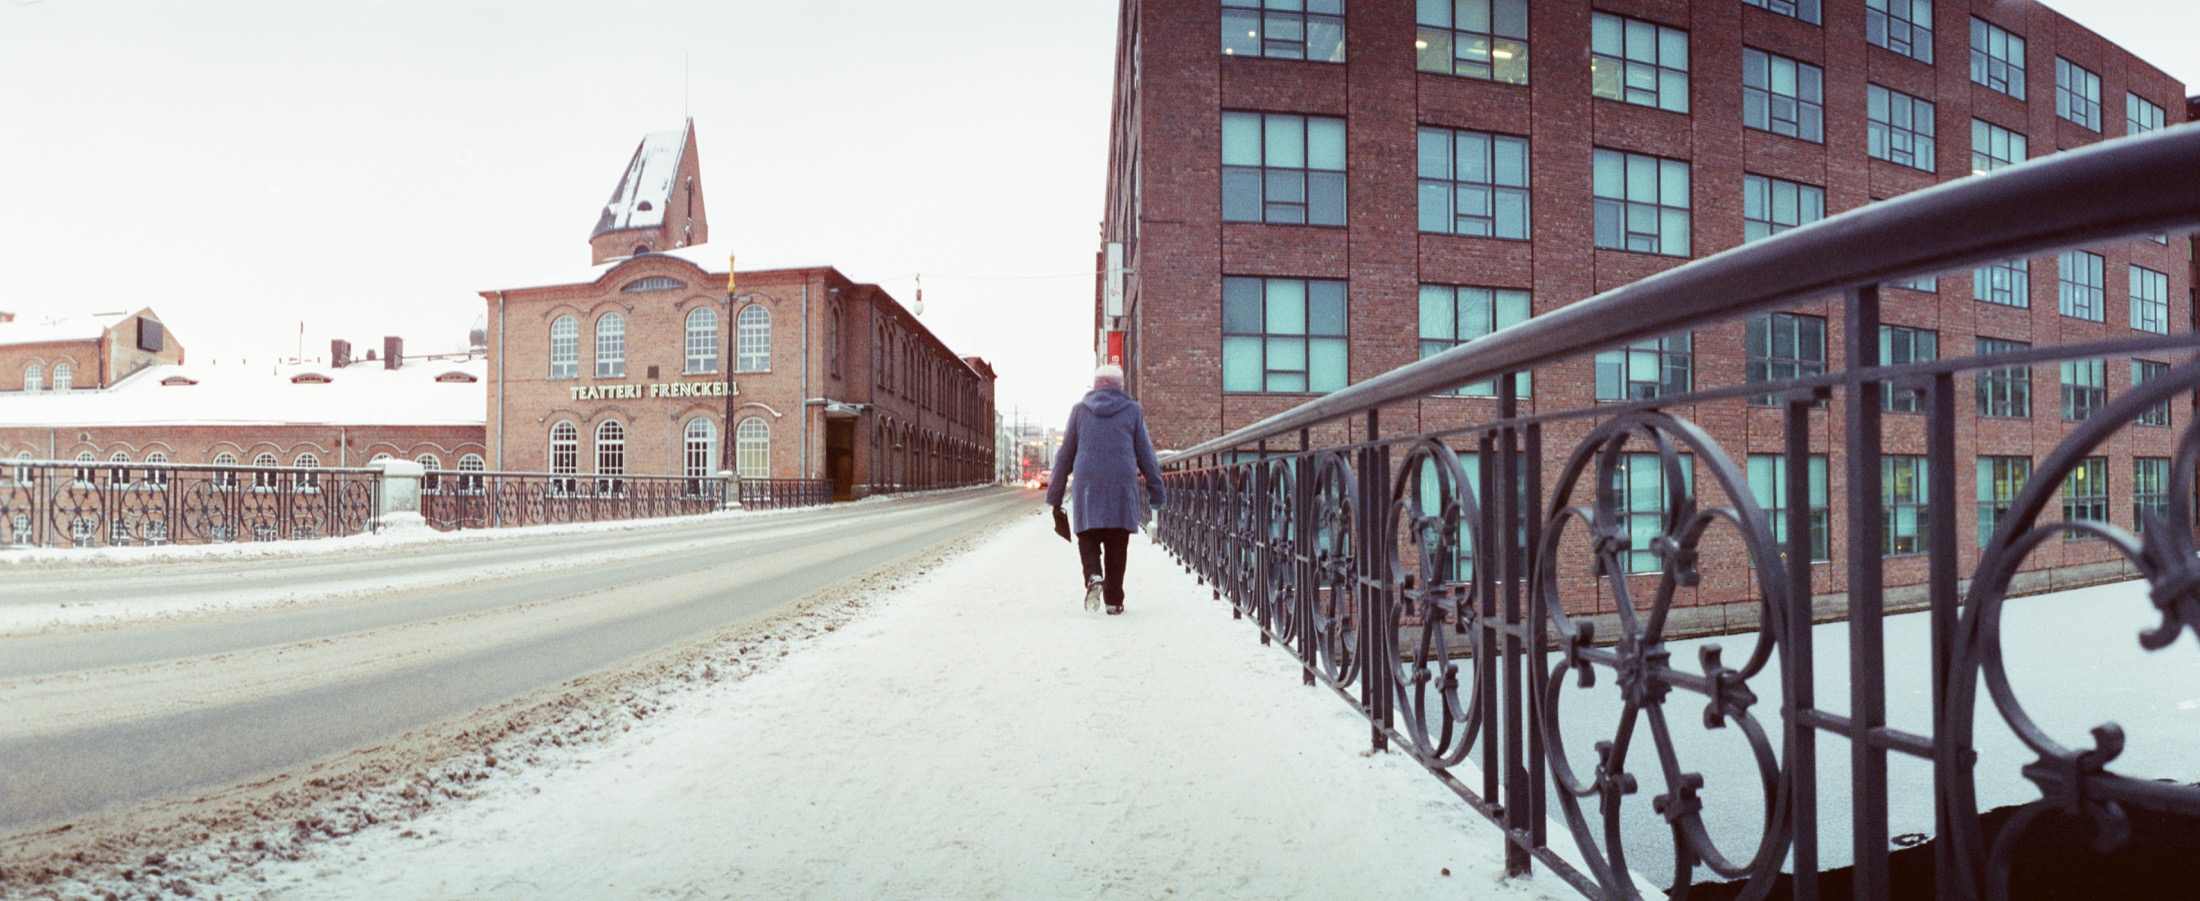 cameraville_horizon_202_panoramic_35mm_tampere_cineStill800_11.jpg